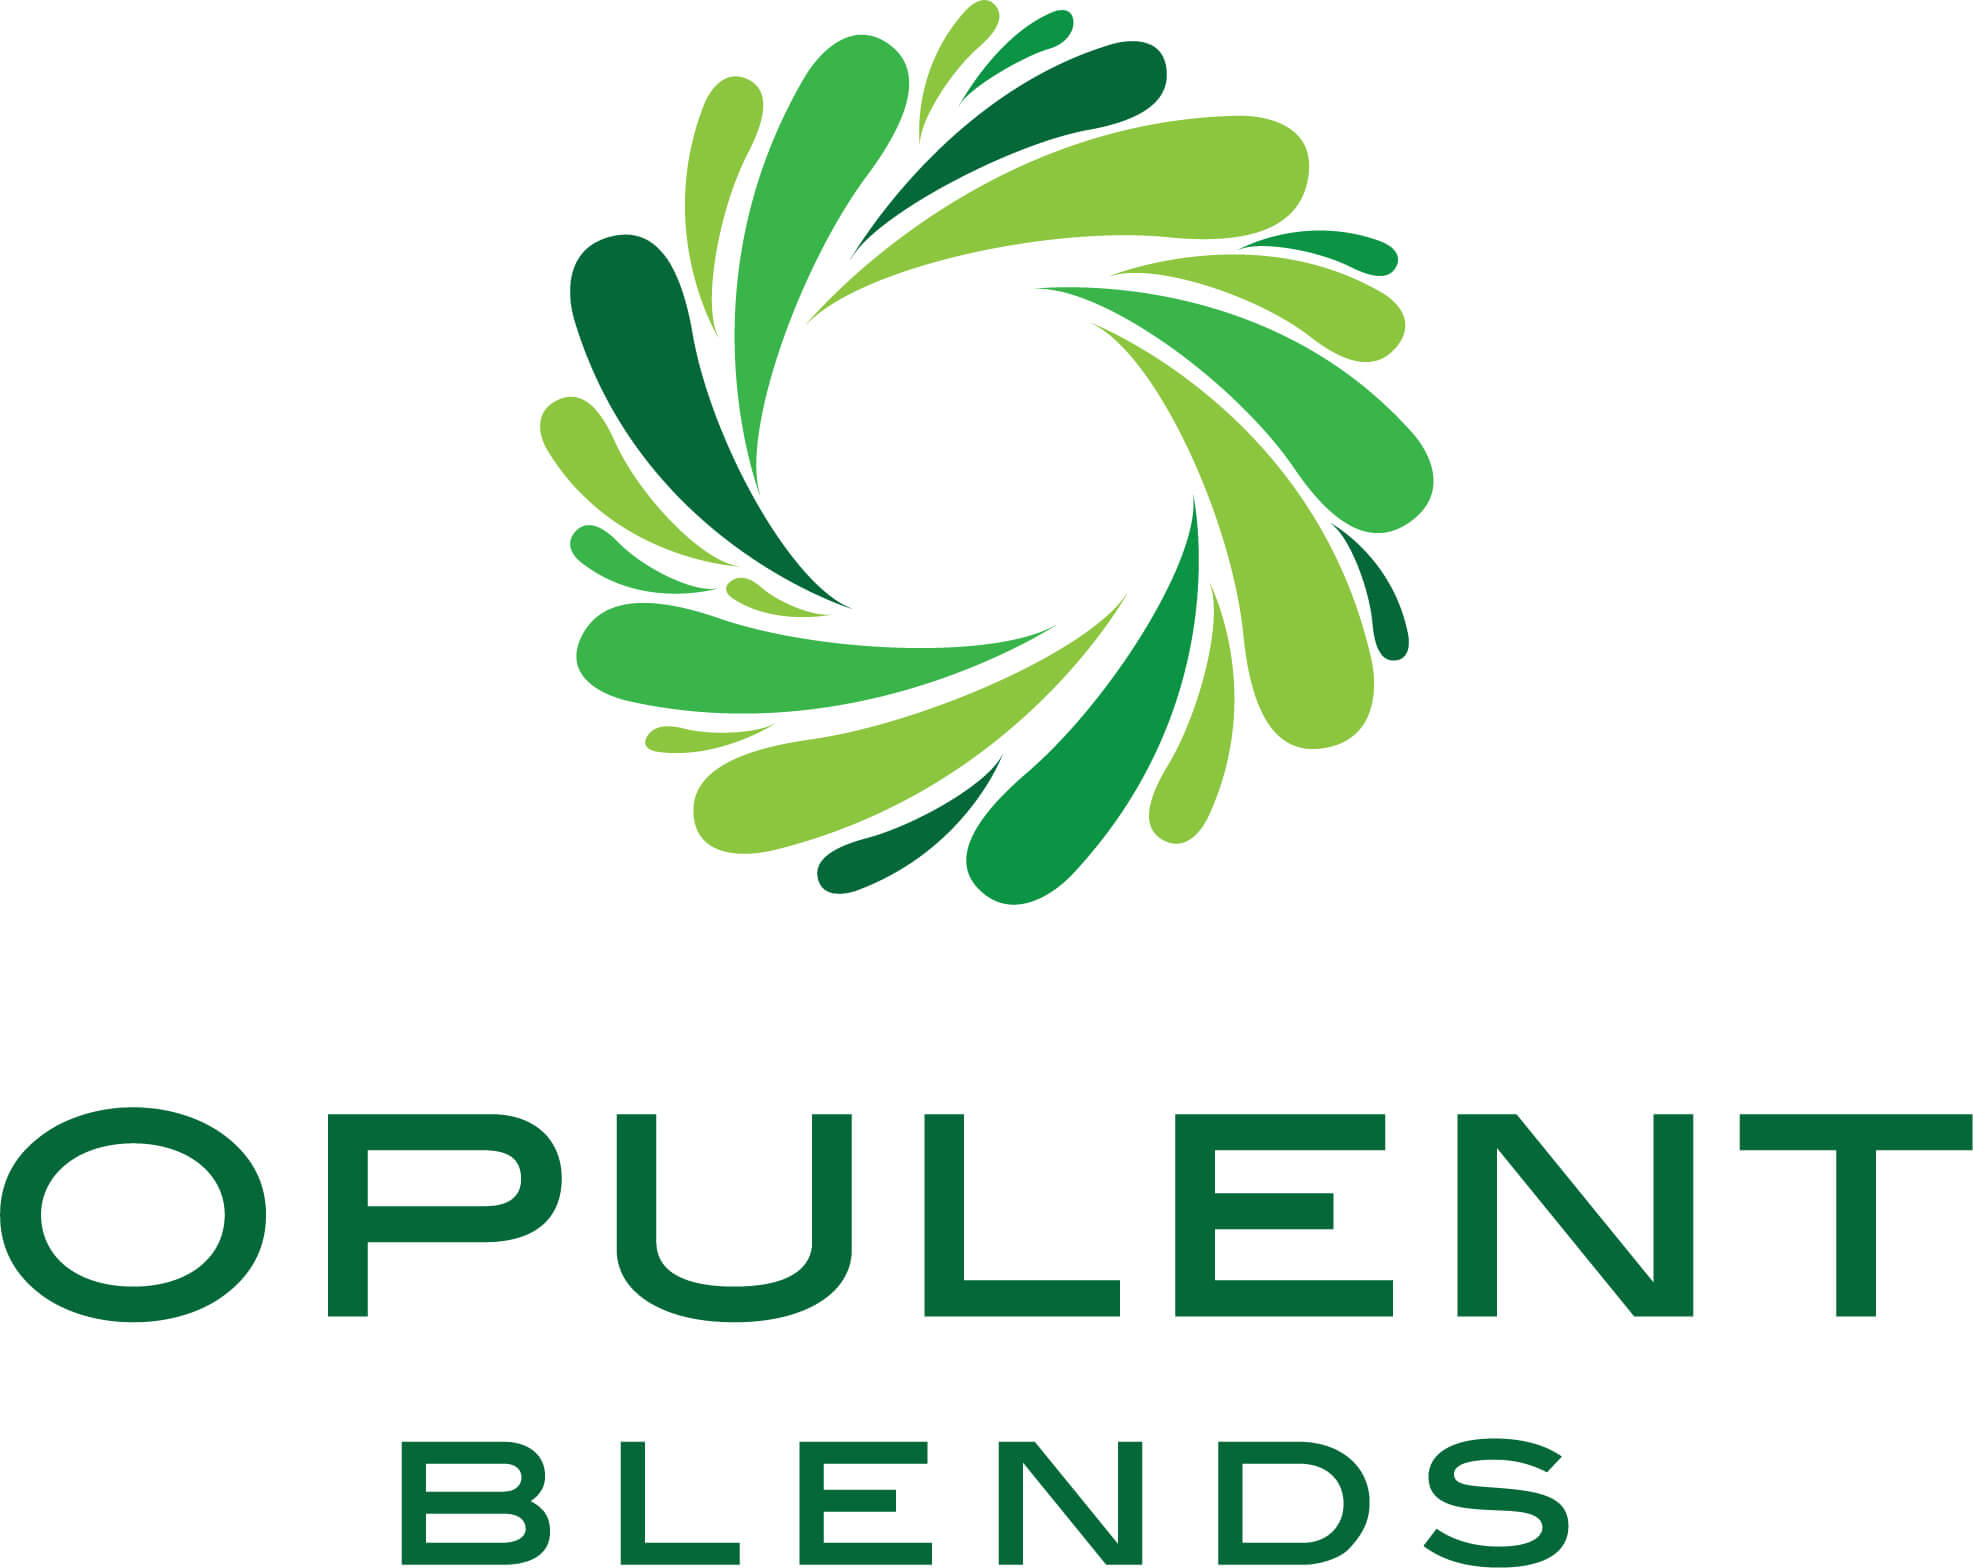 Opulent Blends, Inc. Serves Premium Plants Nutritionals